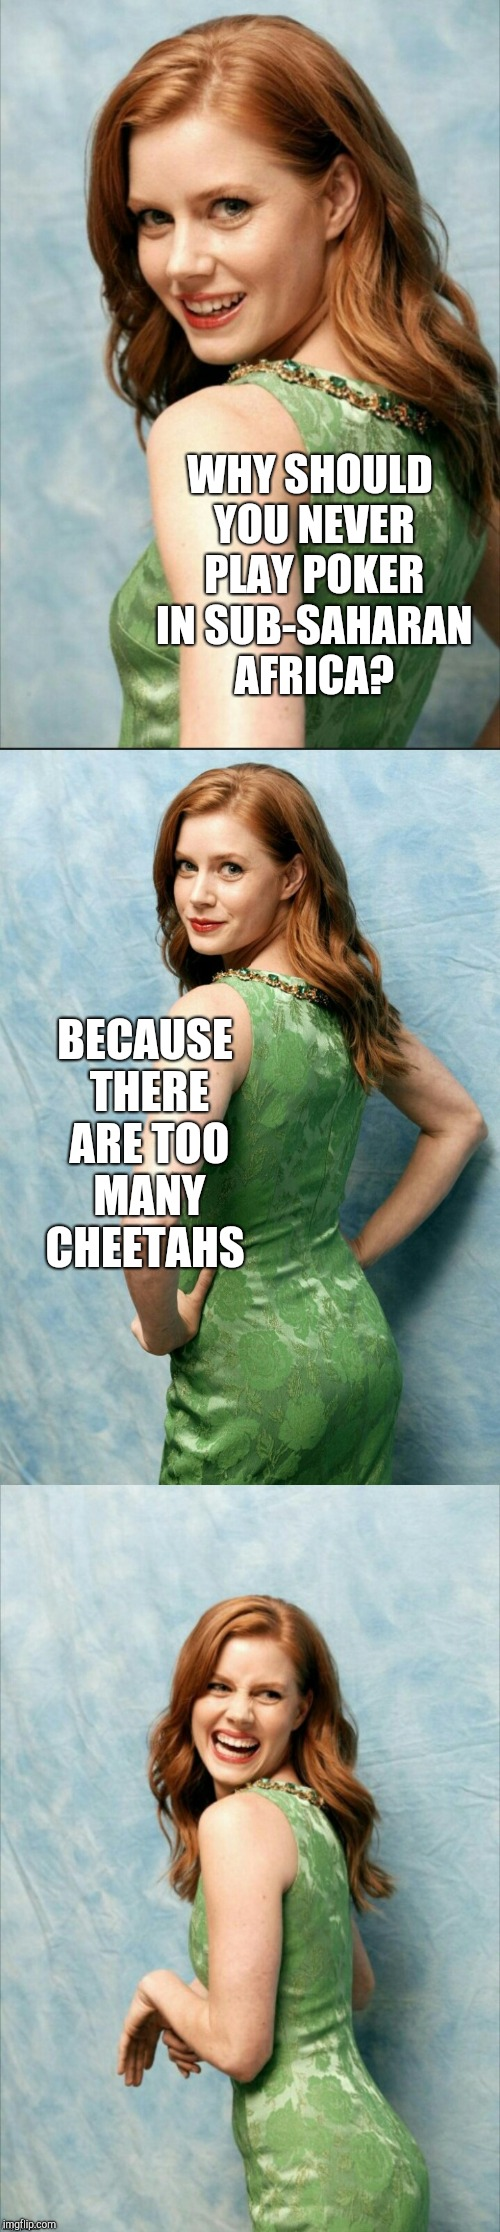 Amy Adams joke template  | WHY SHOULD YOU NEVER PLAY POKER IN SUB-SAHARAN AFRICA? BECAUSE THERE ARE TOO MANY CHEETAHS | image tagged in amy adams joke template,amy adams,jbmemegeek,bad puns,cheetah,poker | made w/ Imgflip meme maker